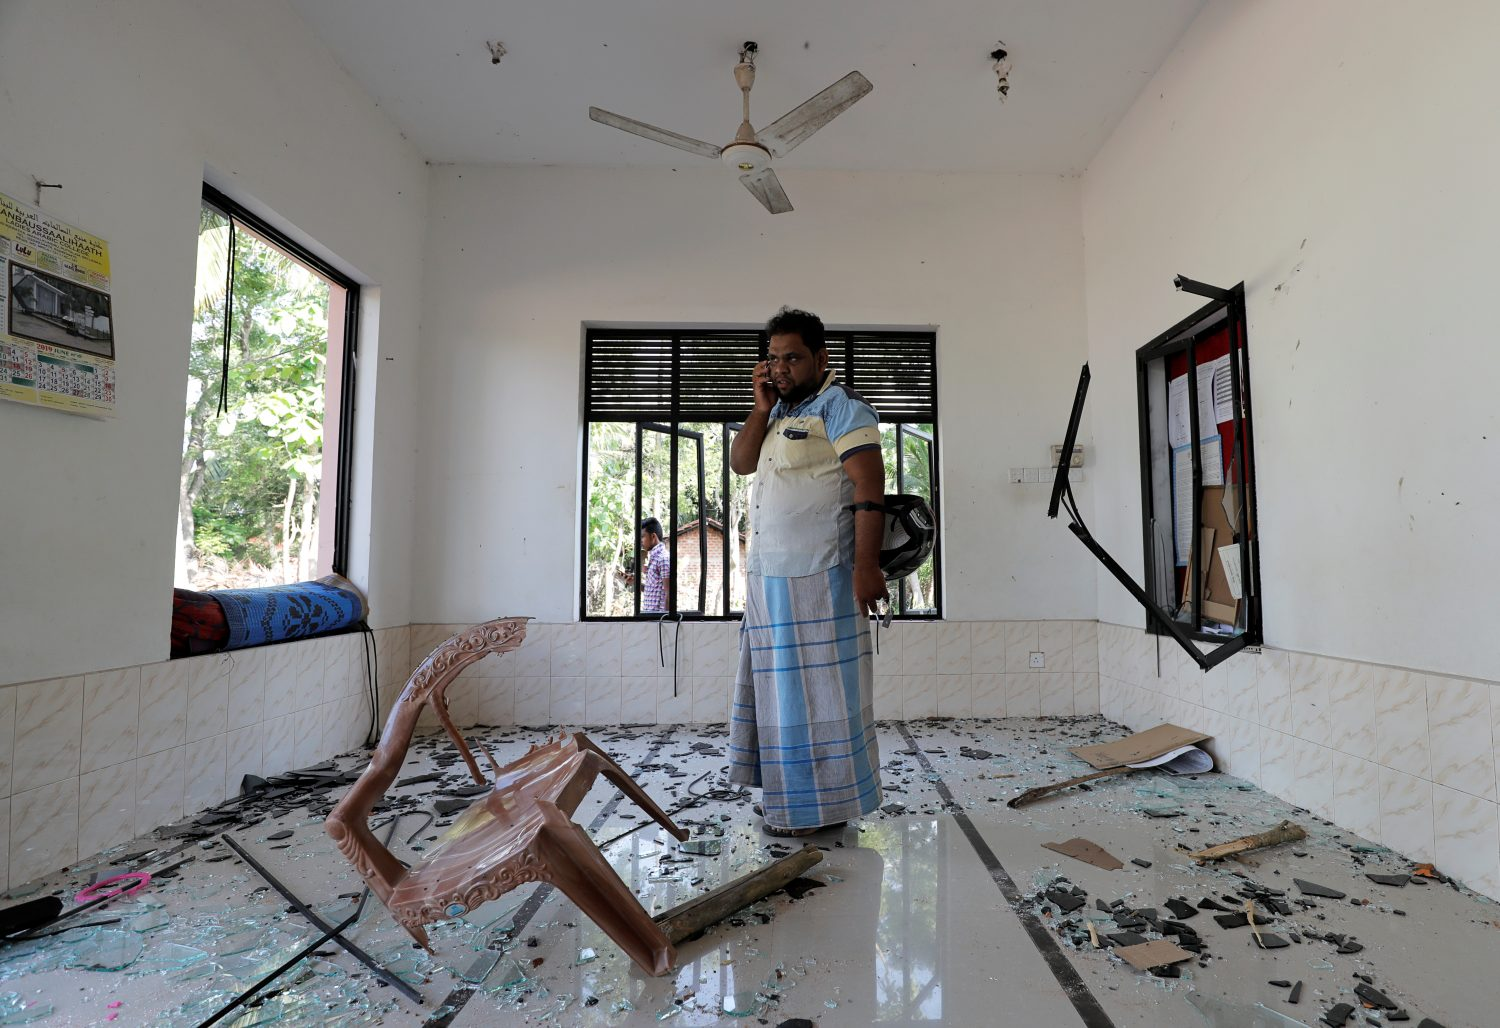 A Muslim man stands inside the Abbraar Masjid mosque after a mob attack in Kiniyama, Sri Lanka May 13, 2019. REUTERS/Dinuka Liyanawatte